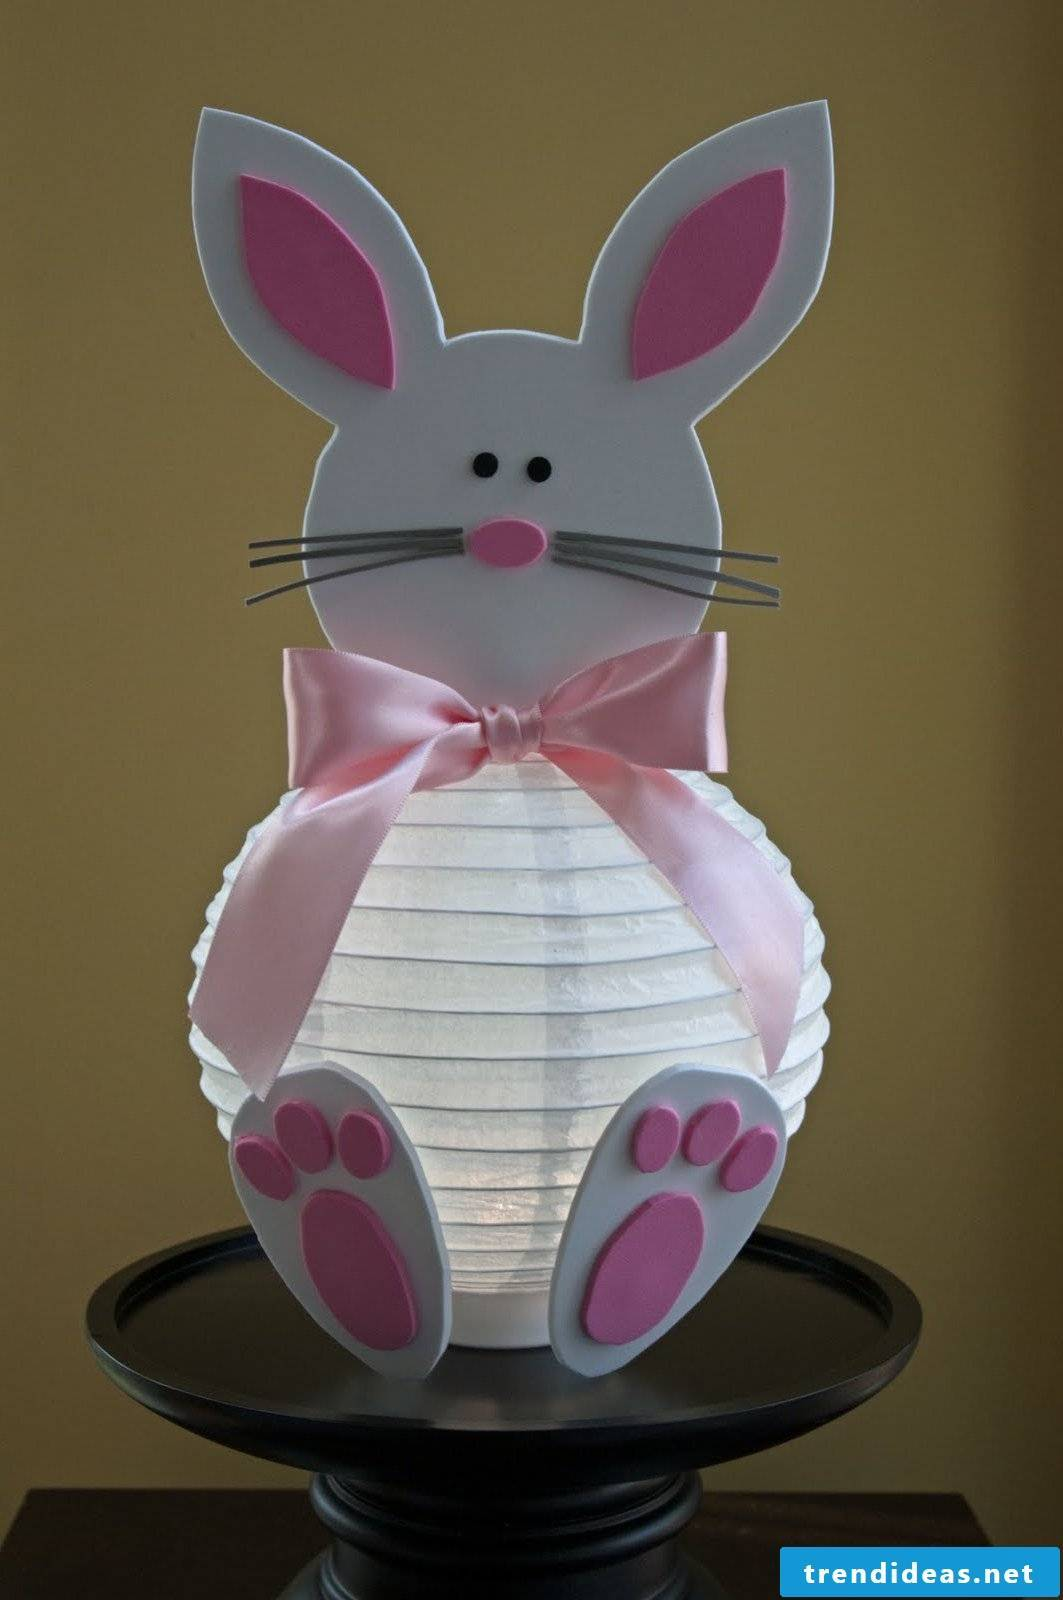 Making lantern for children - a cute bunny